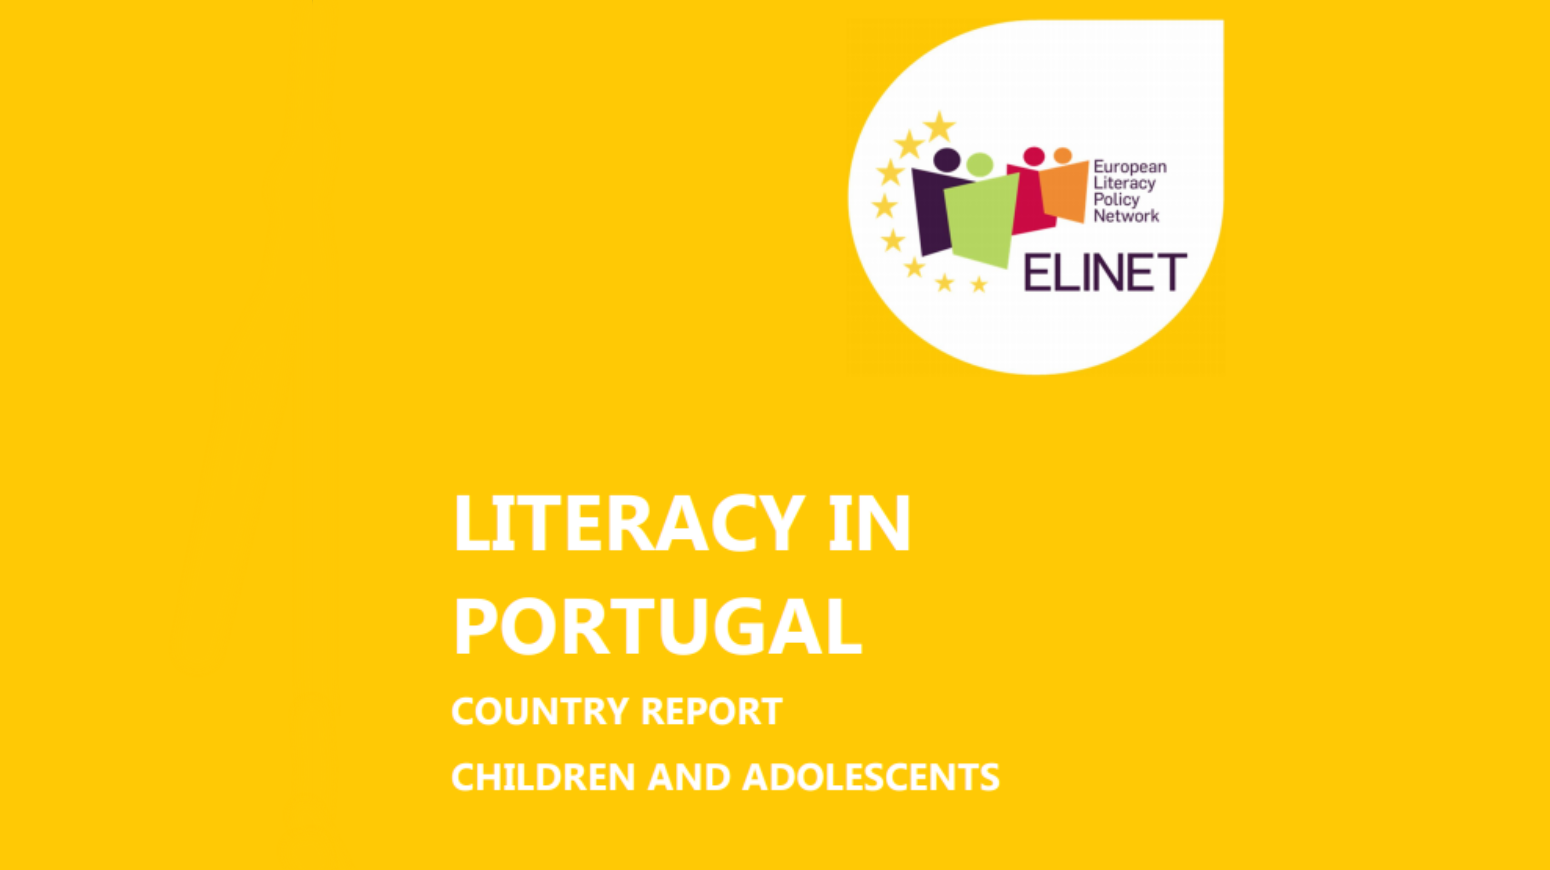 Literacy in Portugal - Country Report<br>Children and Adolescents